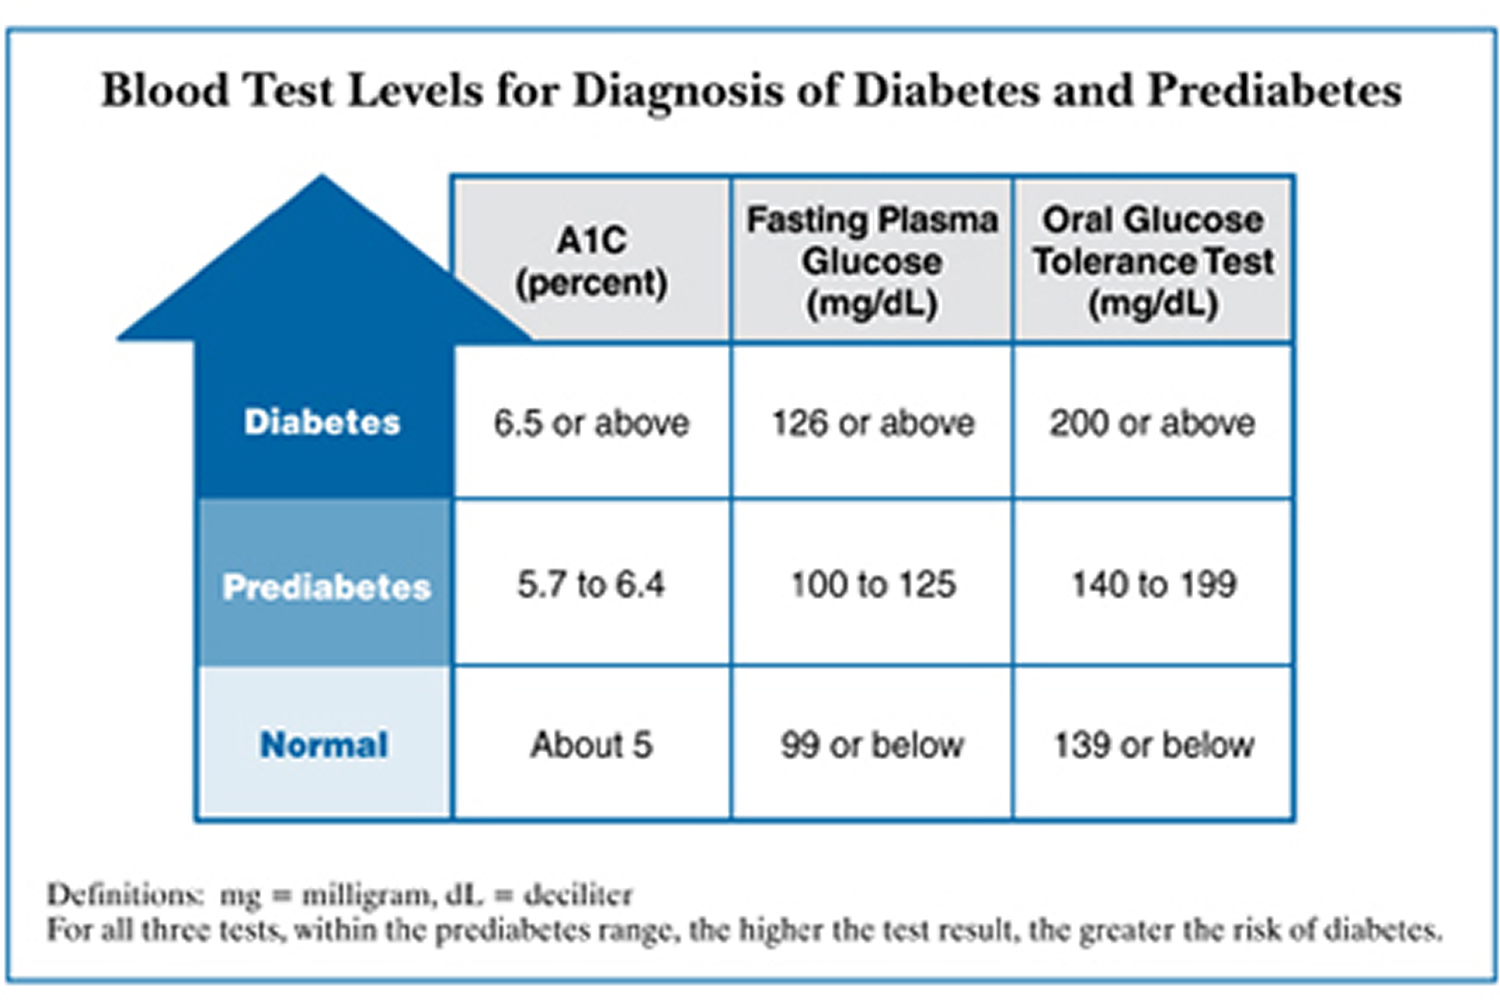 Blood_Test_Levels_Chart_of_Diabetes_and_Prediabetes